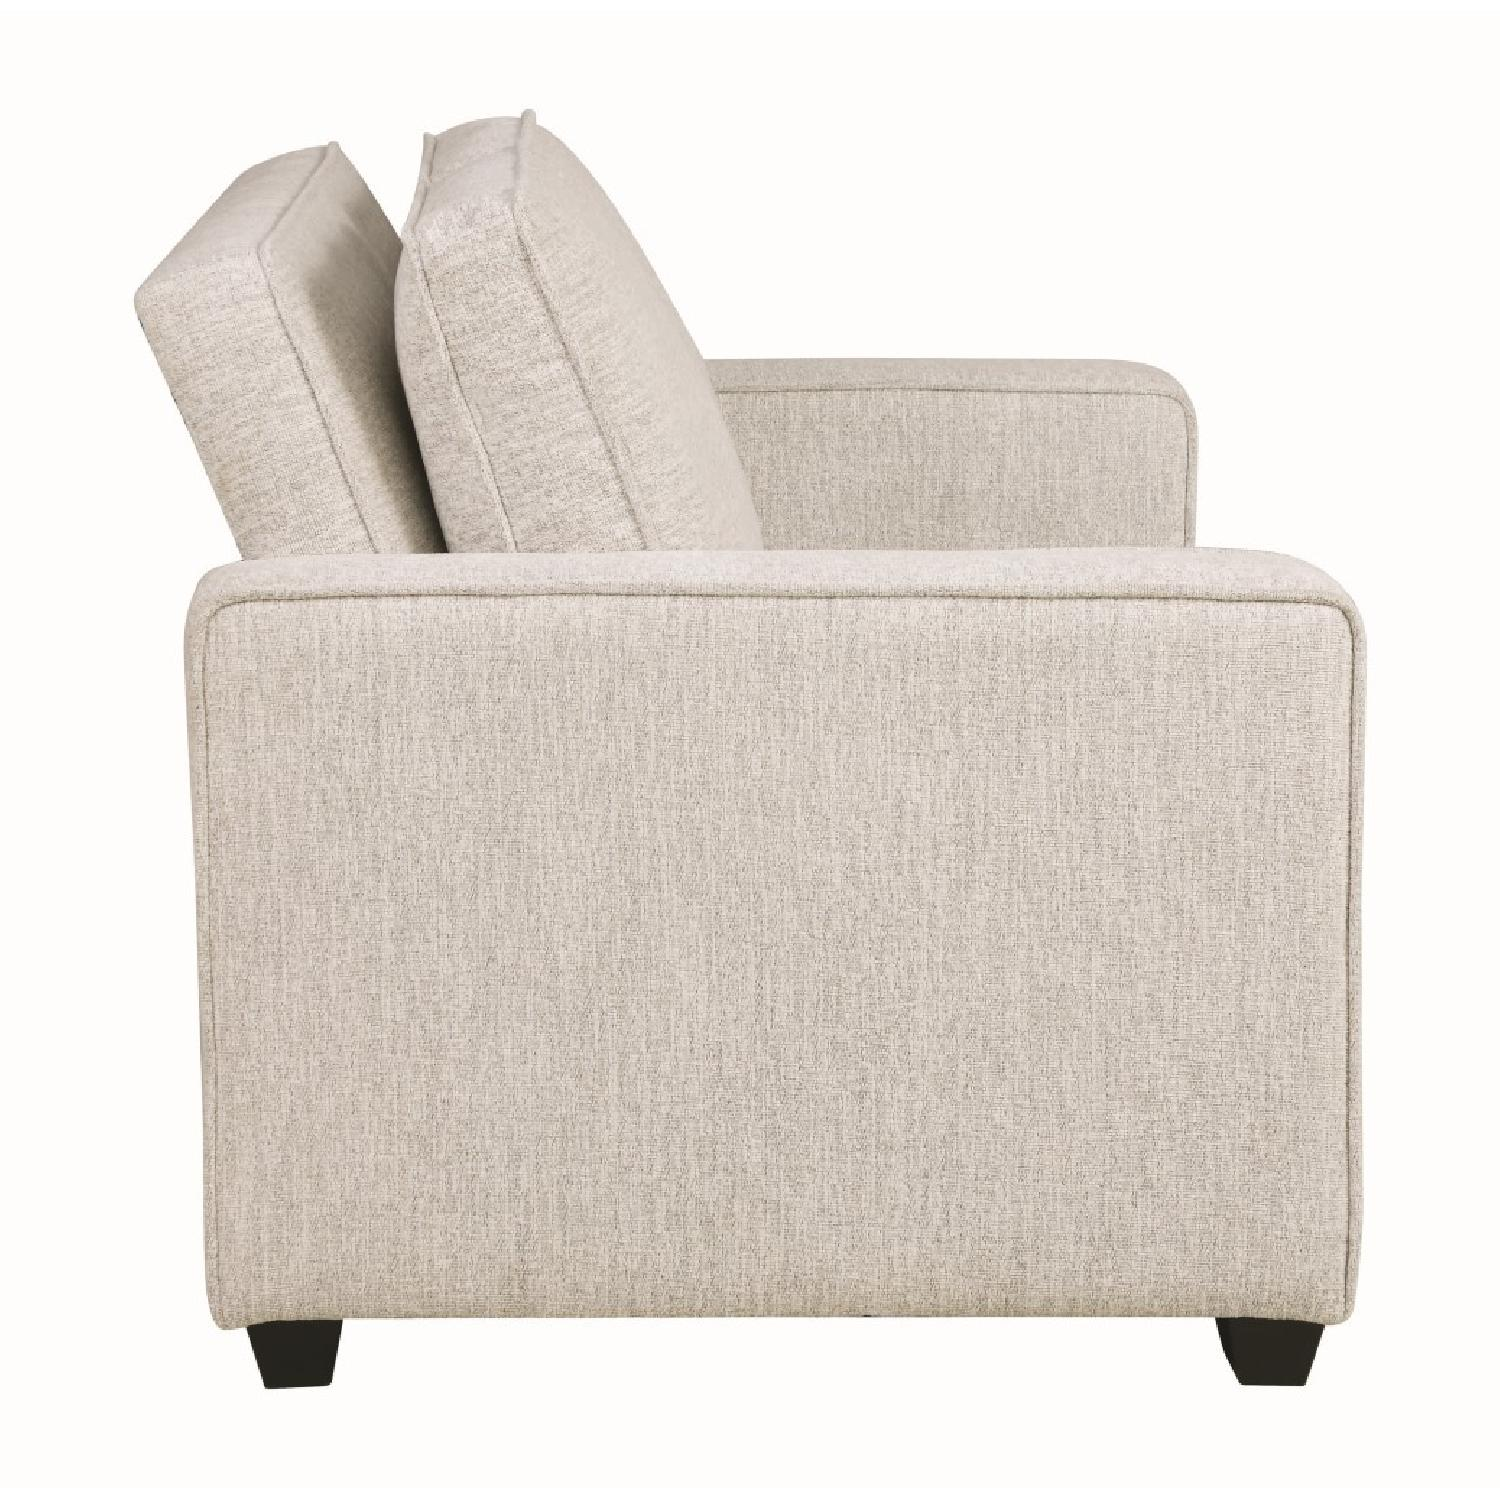 Compact Sofabed in Beige Chenille Fabric w/ Pull-Out Sleeper - image-4